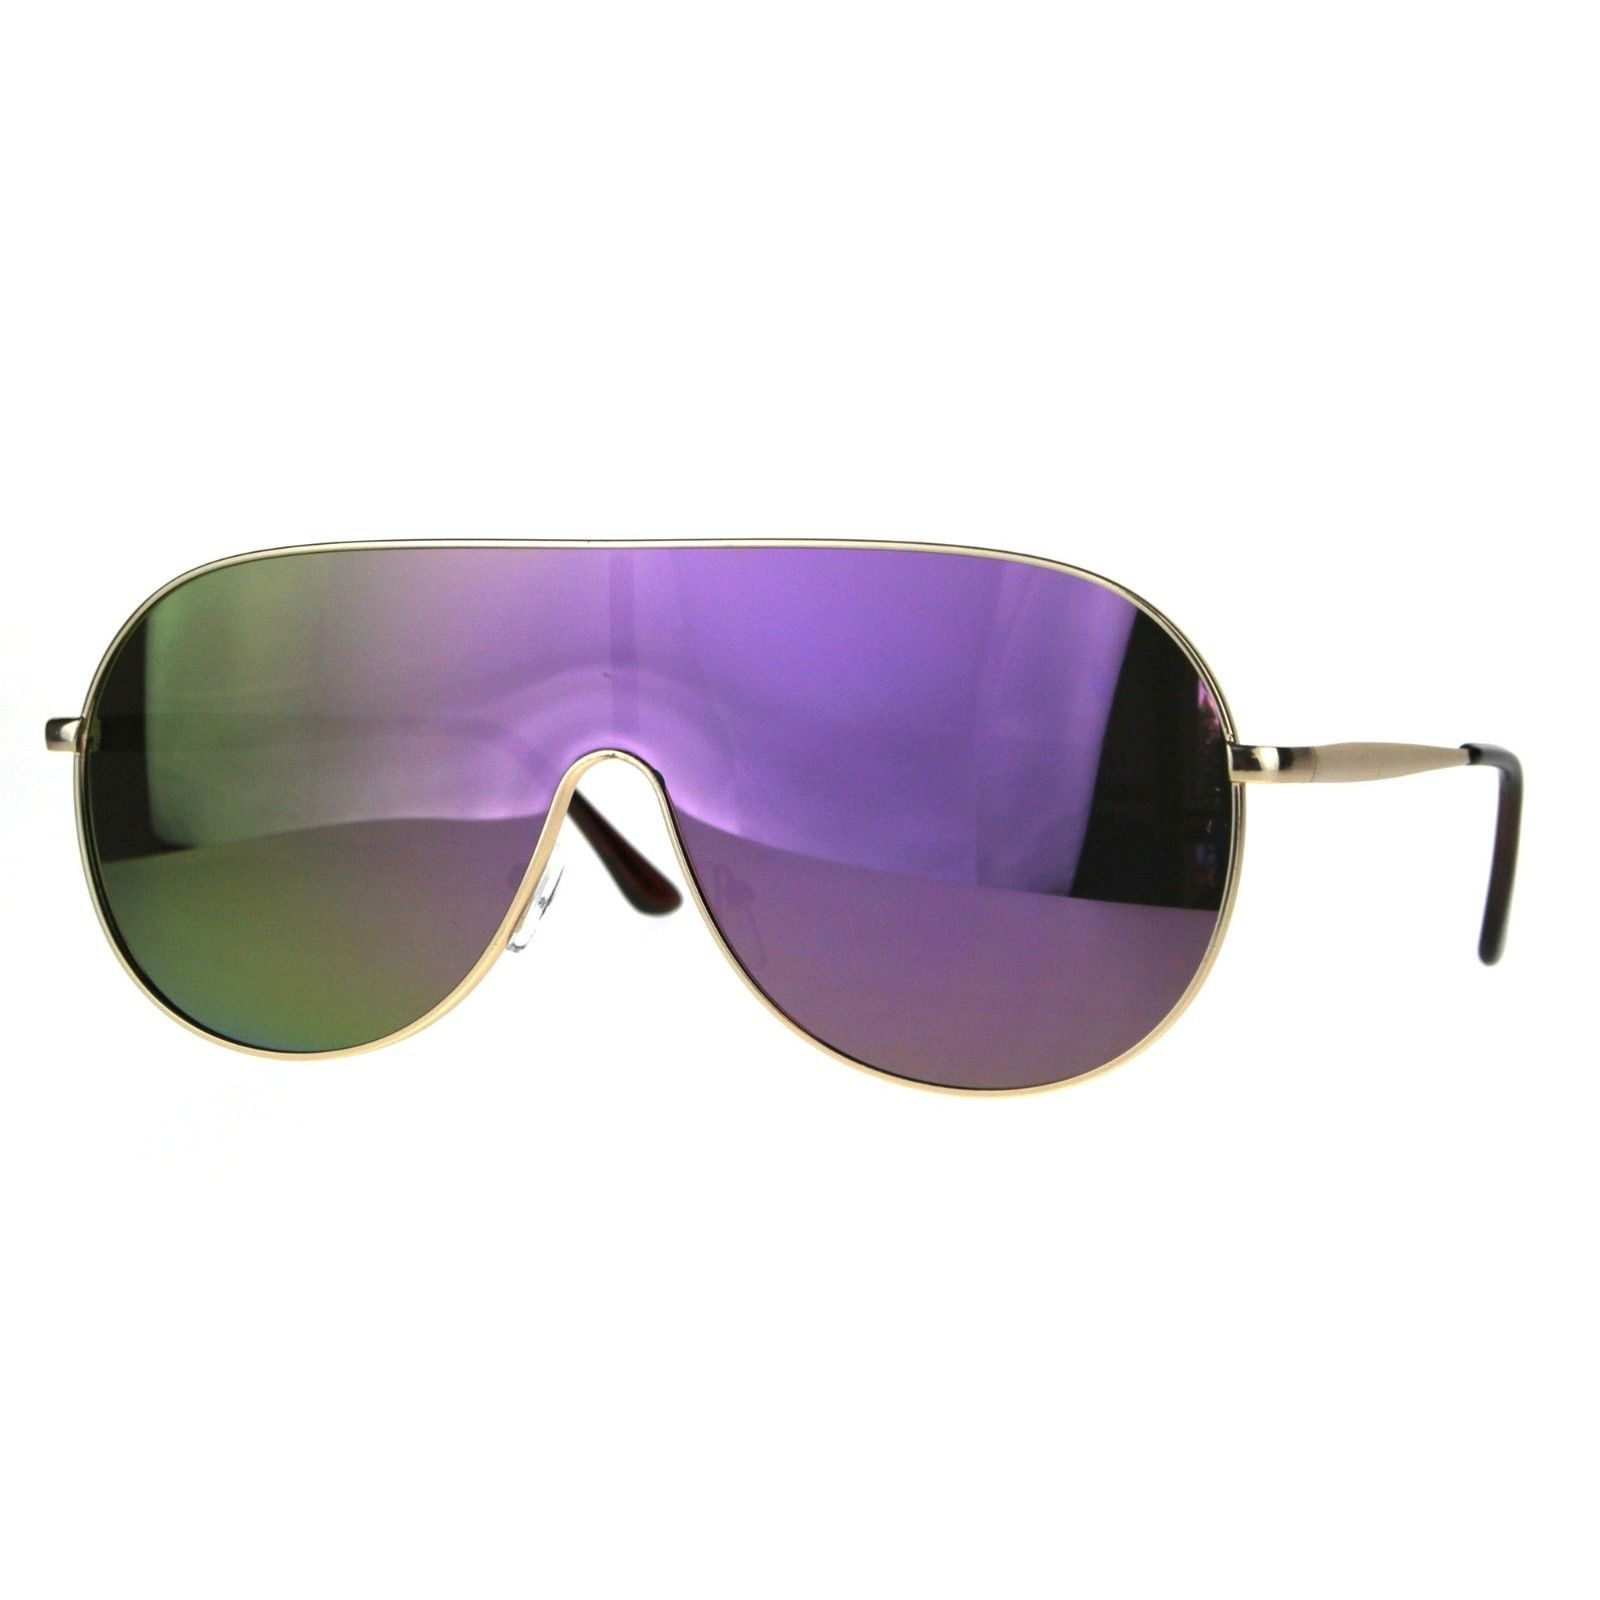 Futuristic Oversized Sunglasses Round Shield Metal Frame Mirrored Lens